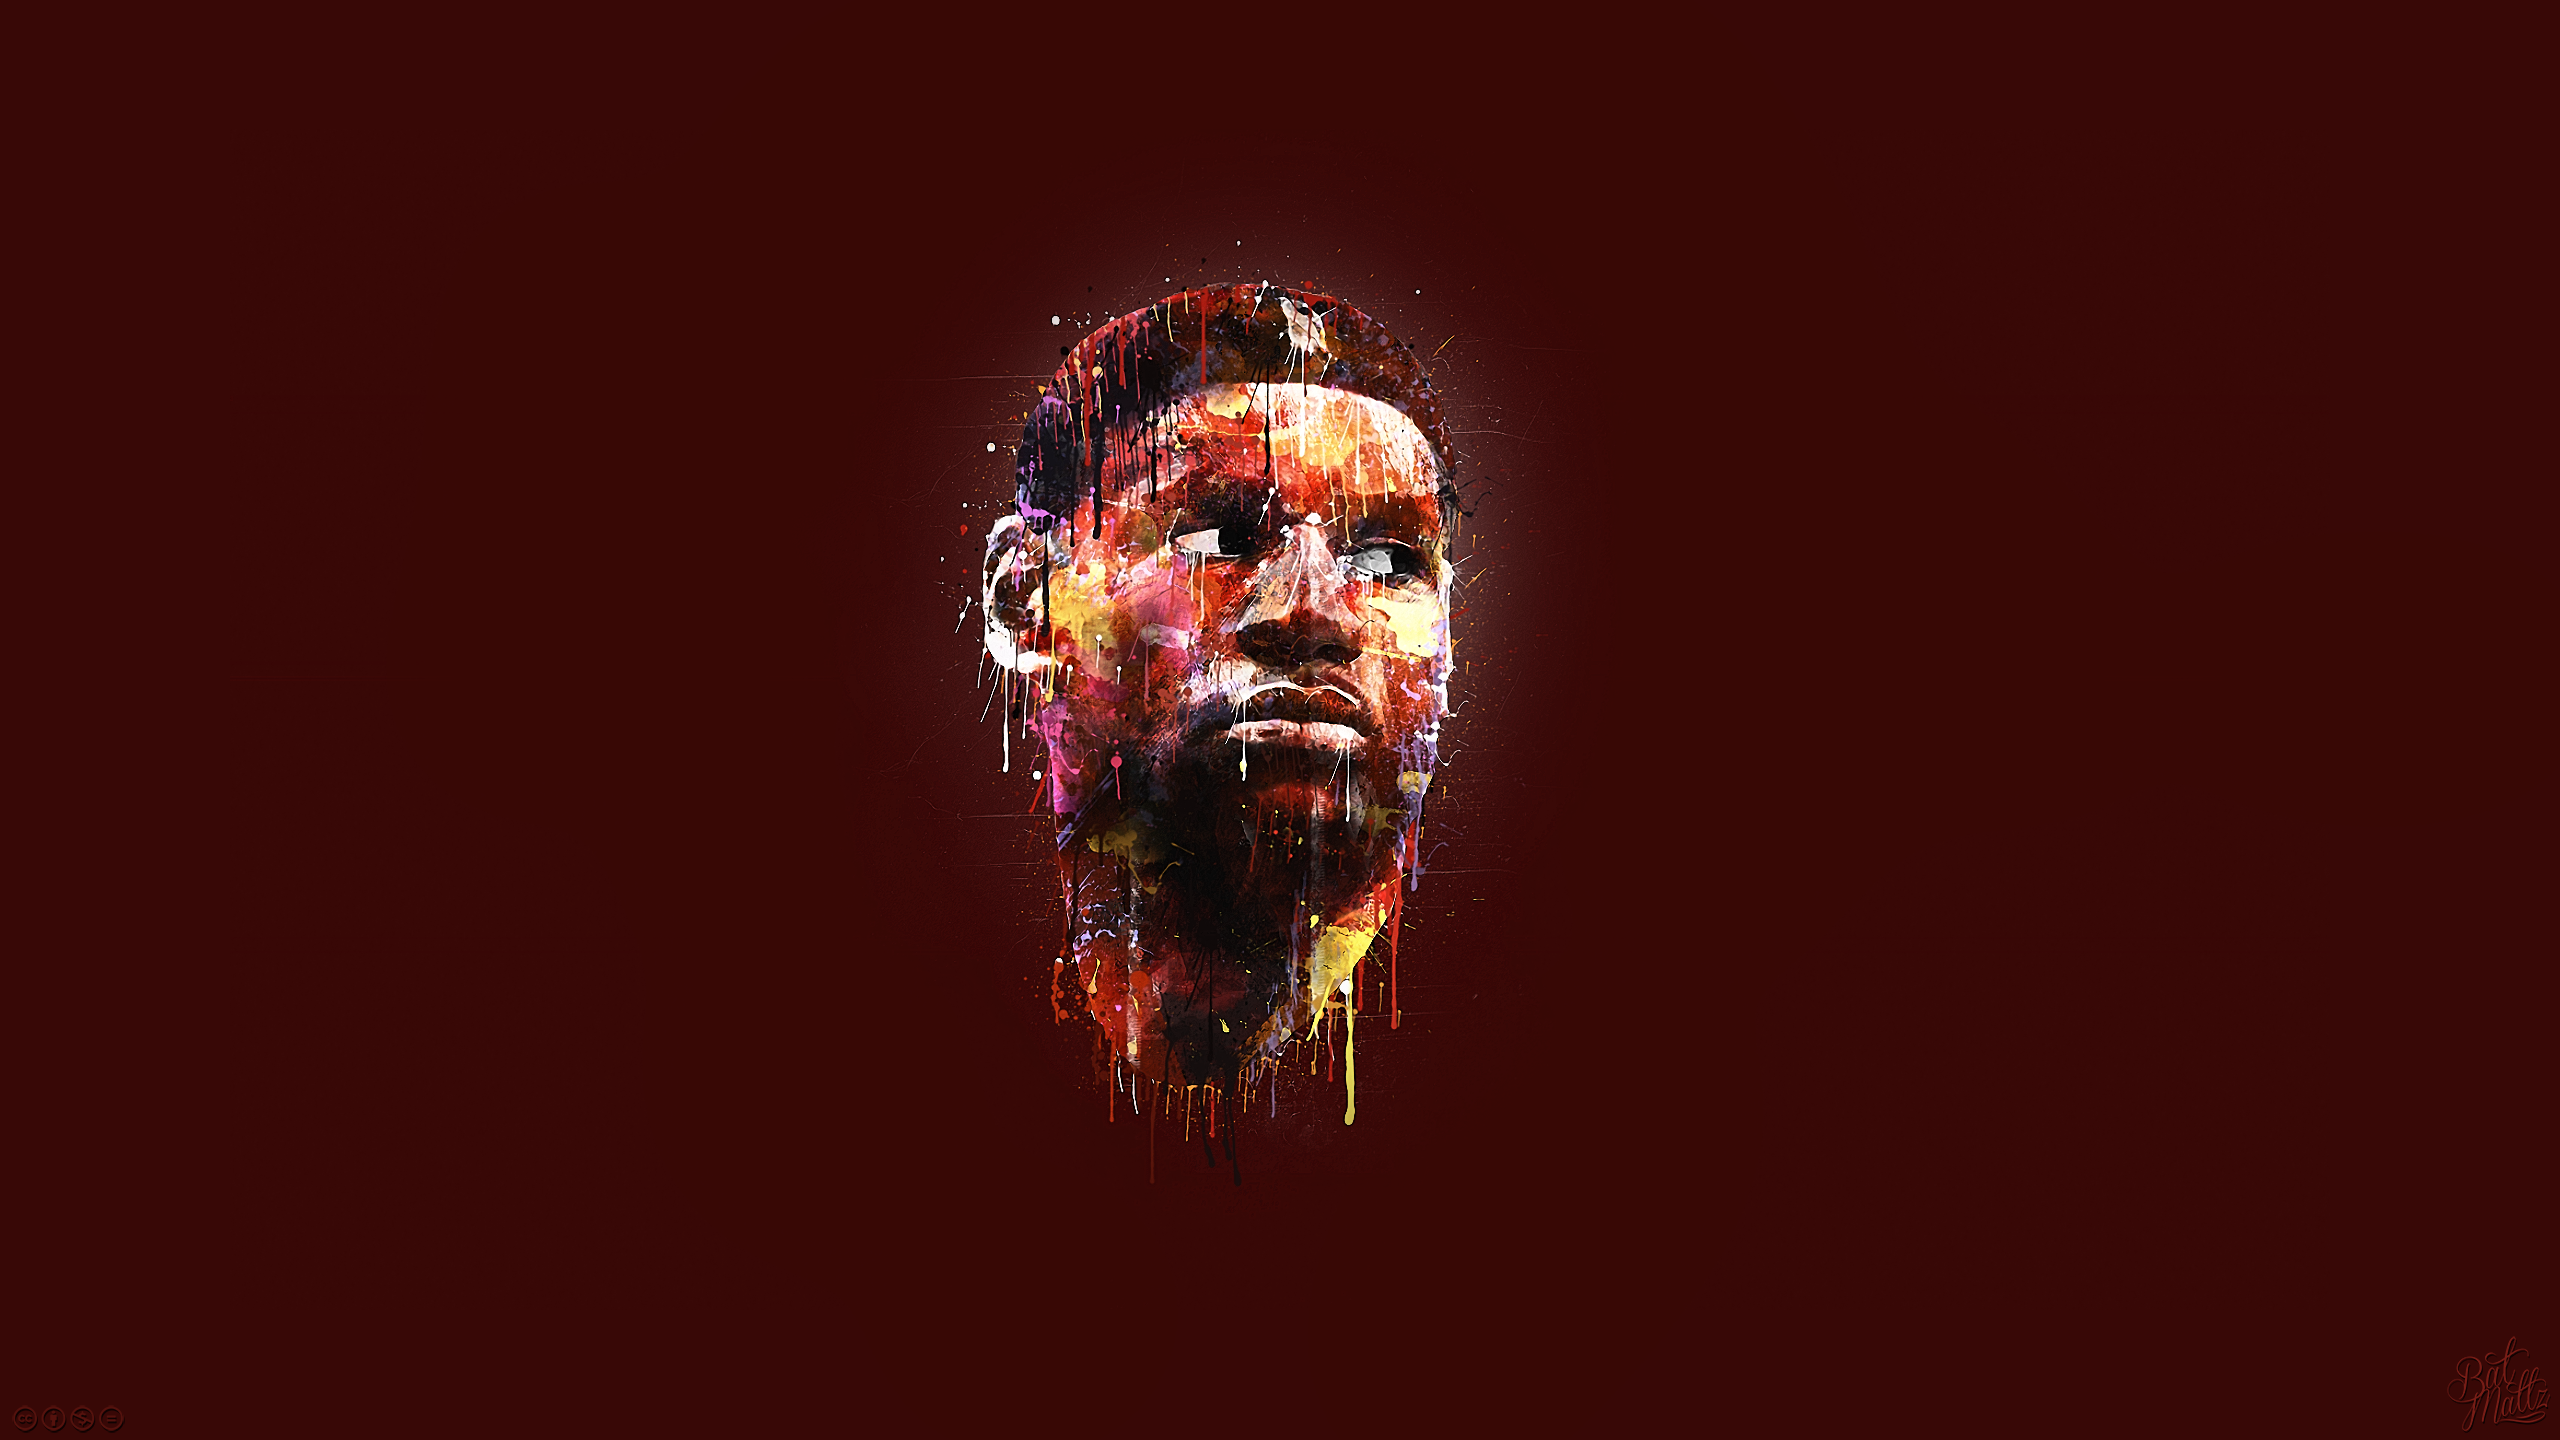 Free-Lebron-James-Cleveland-Wallpaper-Download